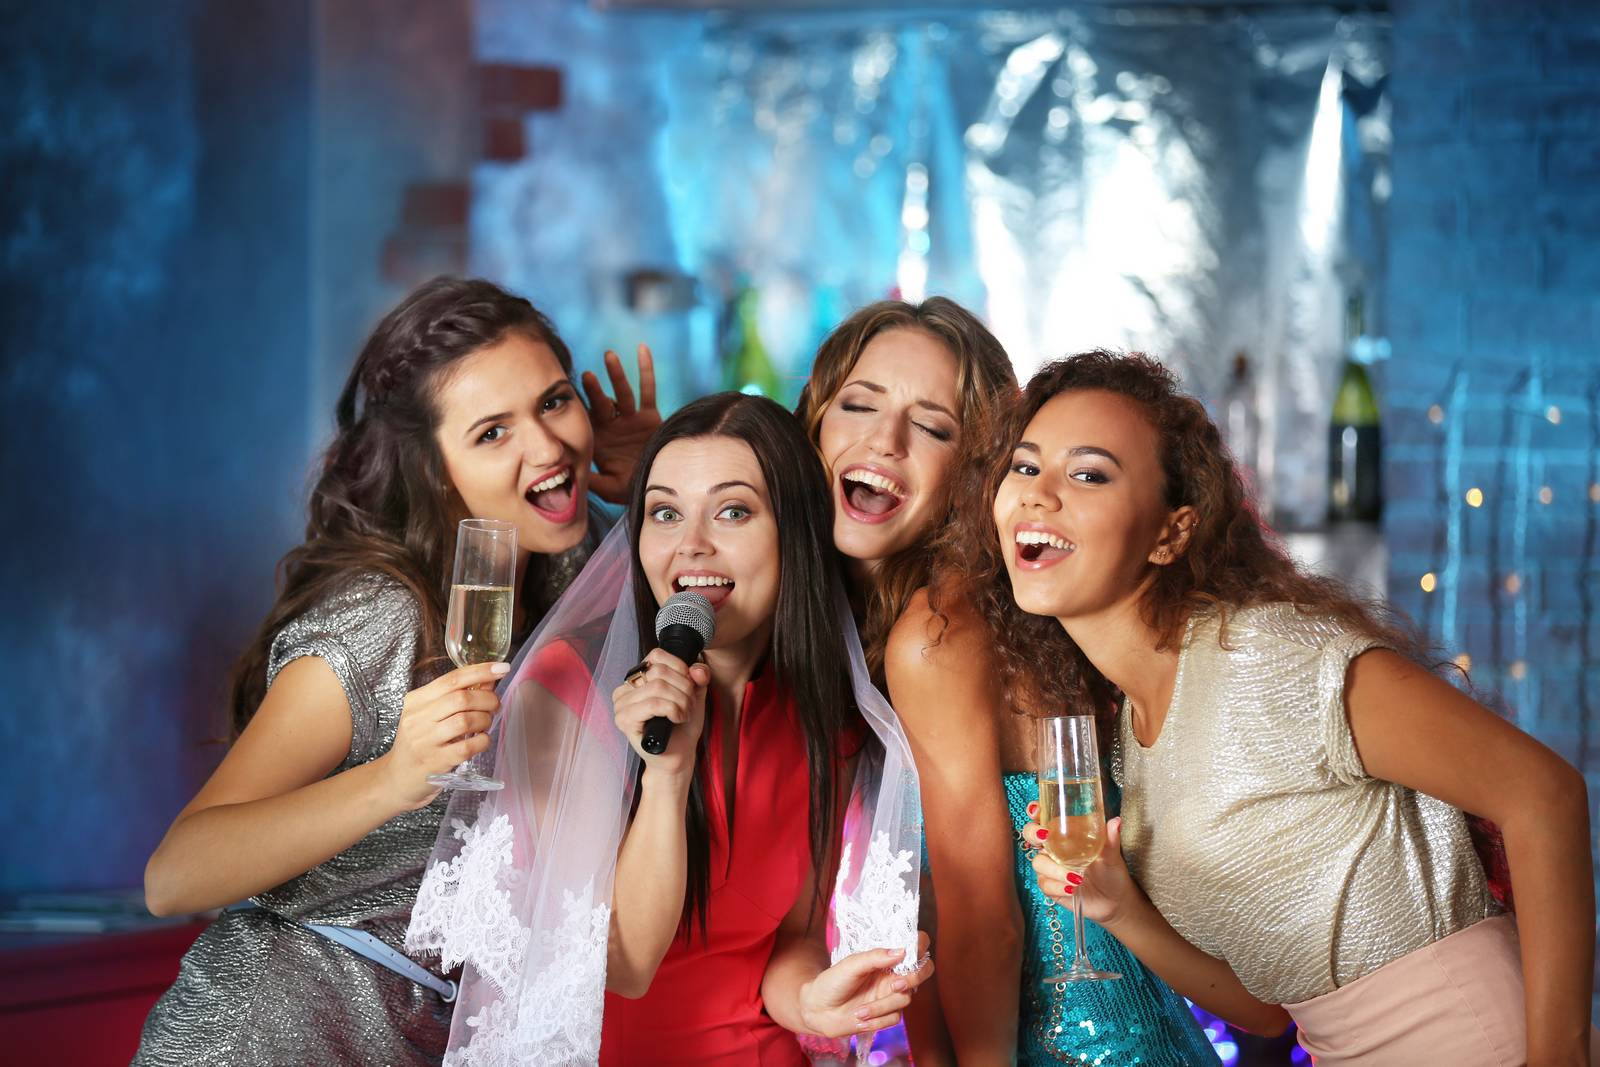 Tips And Tricks In Throwing A Perfect Bachelorette Party